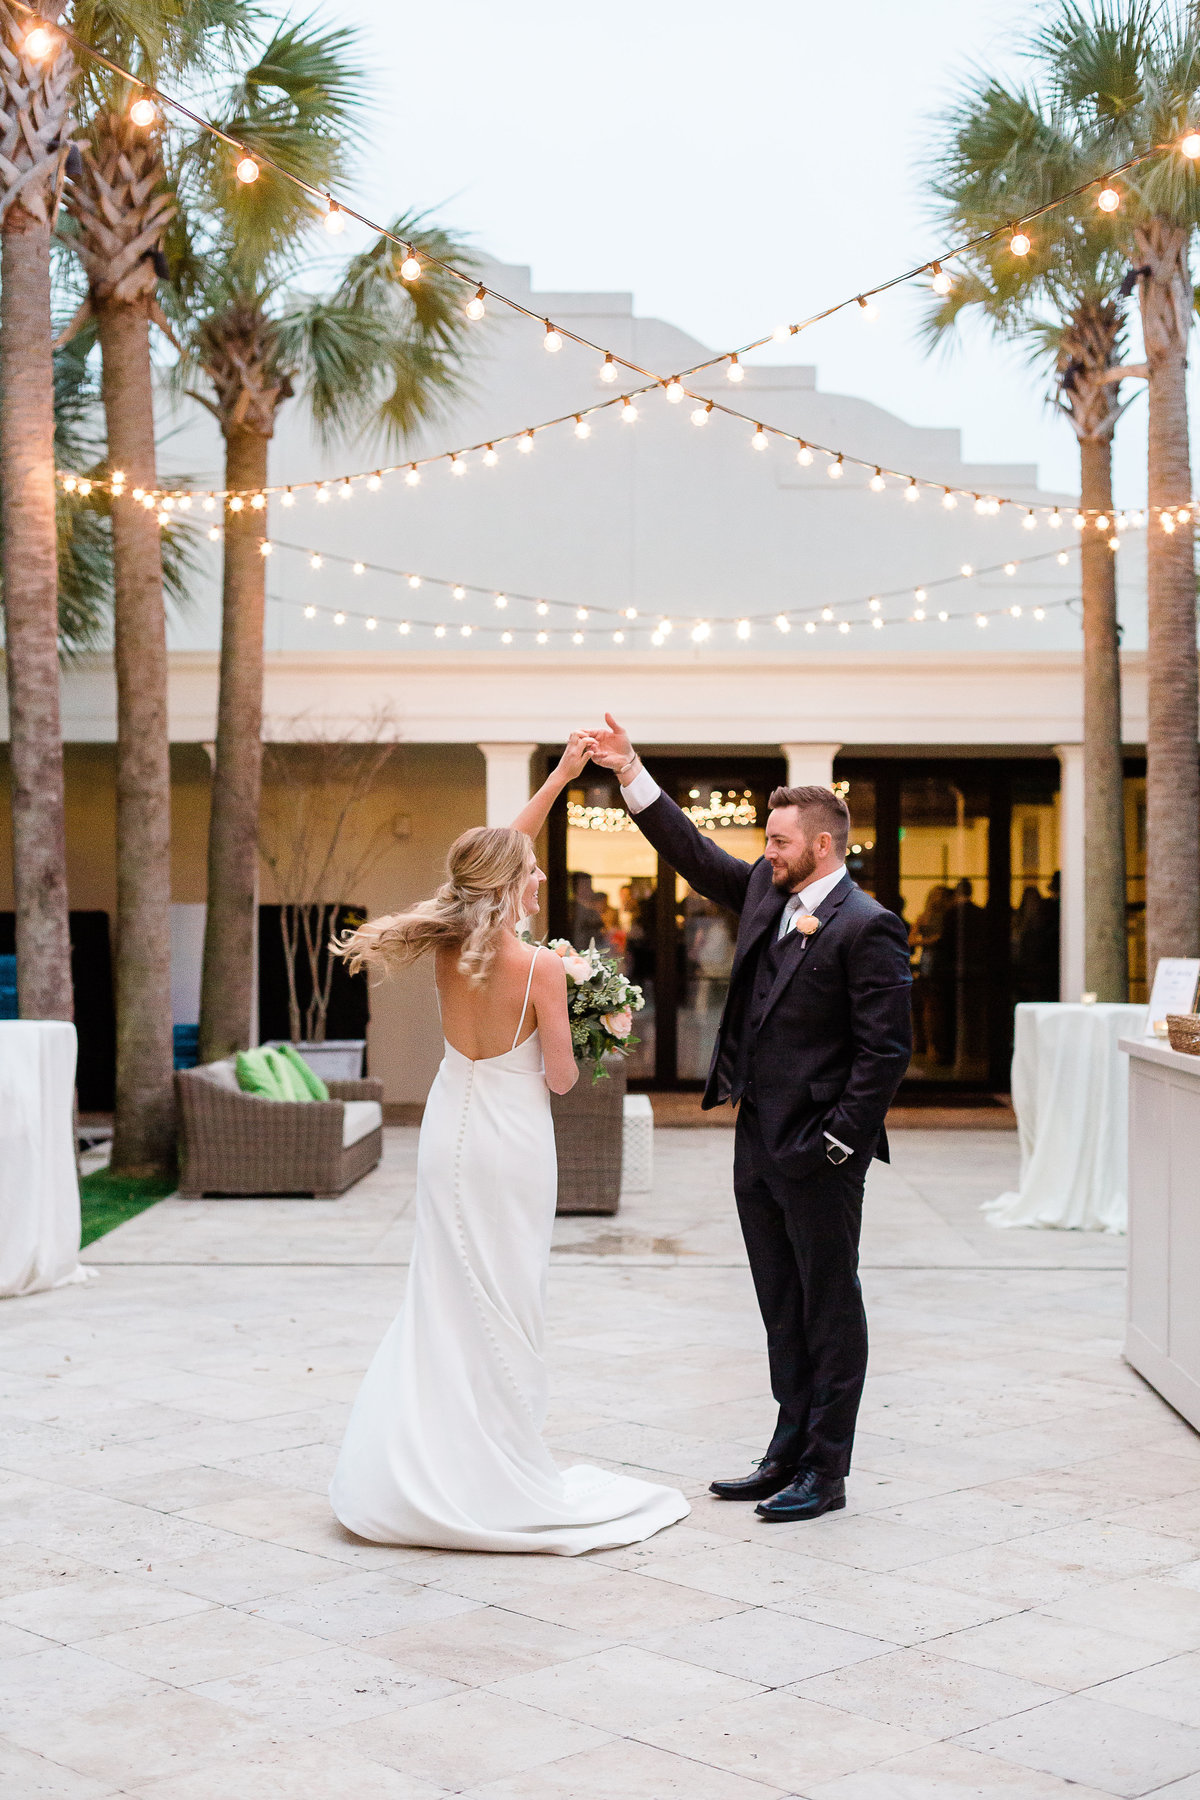 Charleston Weddings- Nancy Lempesis Photography - Wedding Phtography (85)